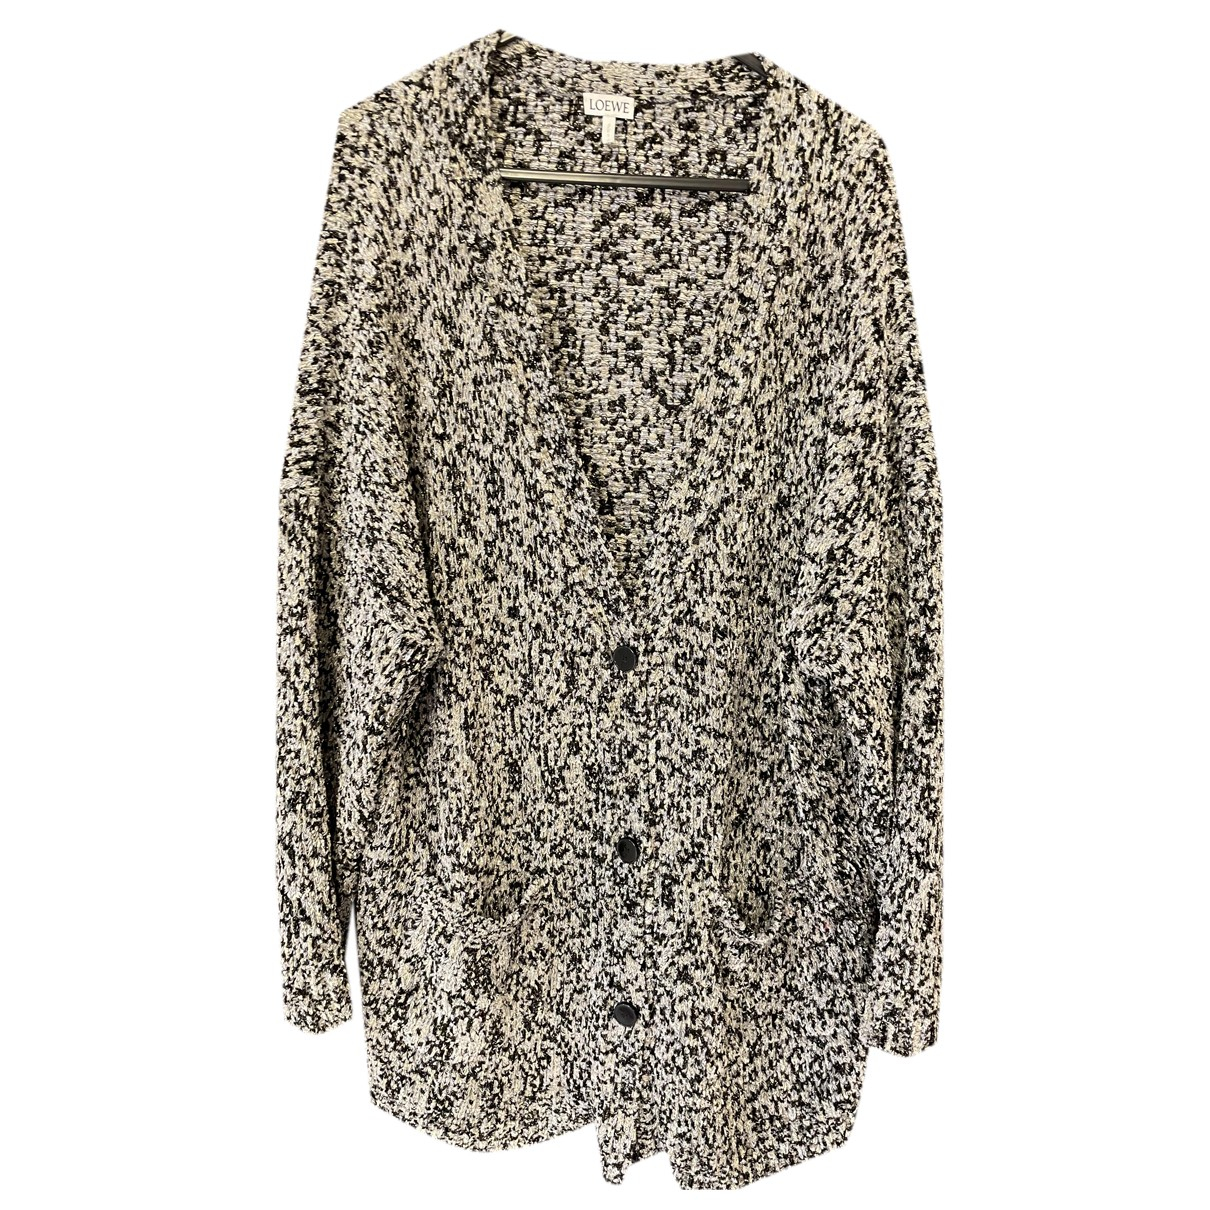 Loewe N Grey Knitwear for Women XS International